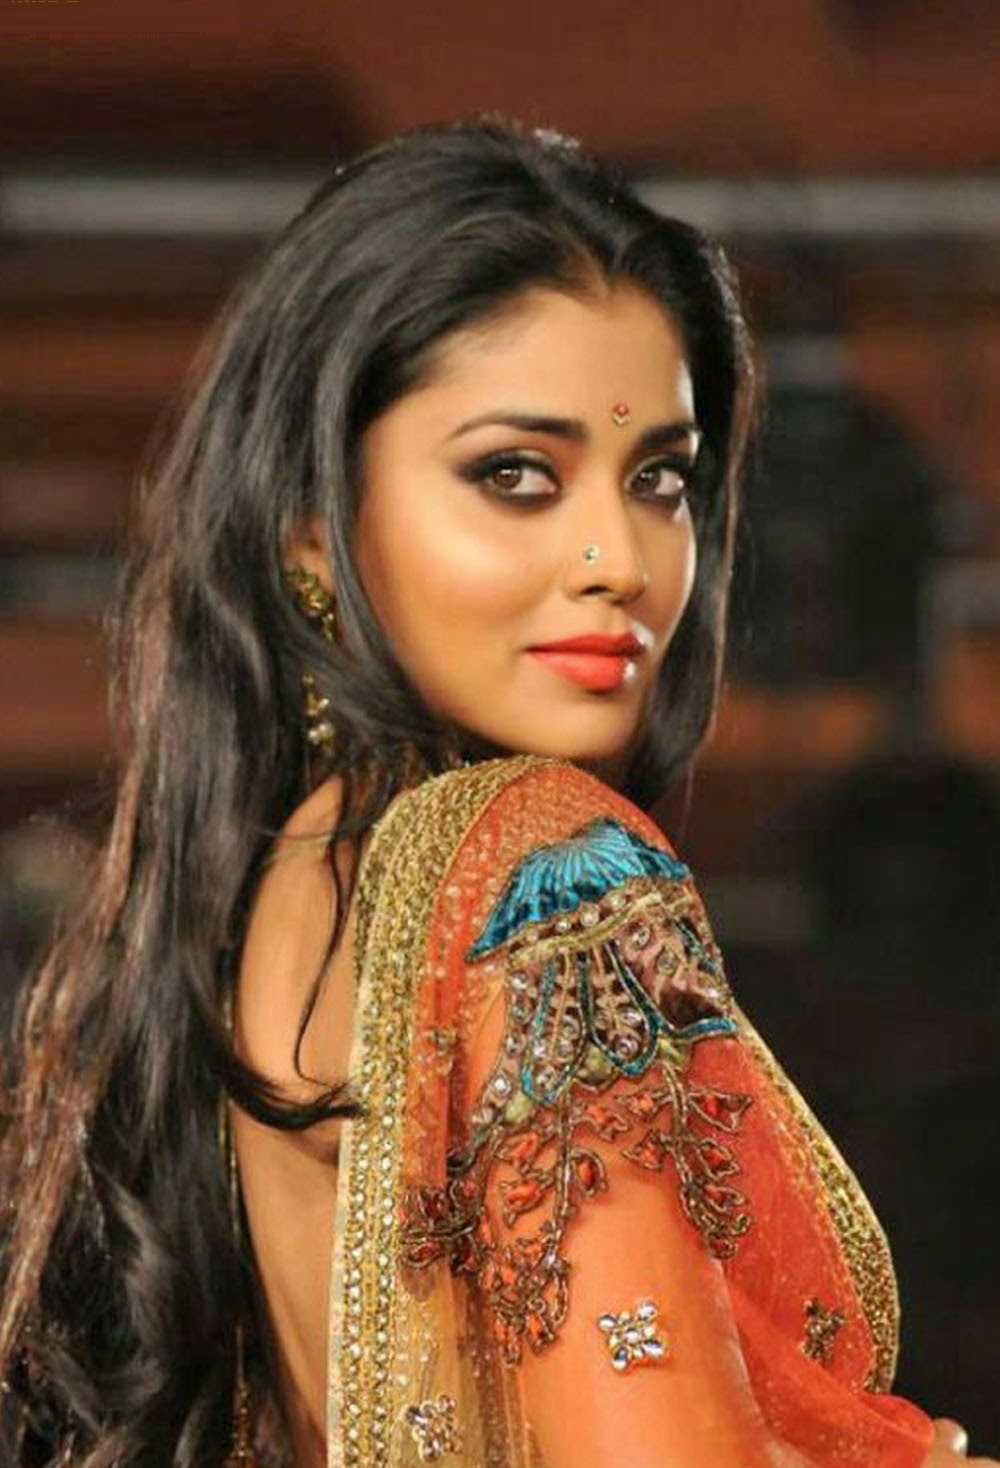 all 4u hd wallpaper free download : shriya saran wallpapers fee download